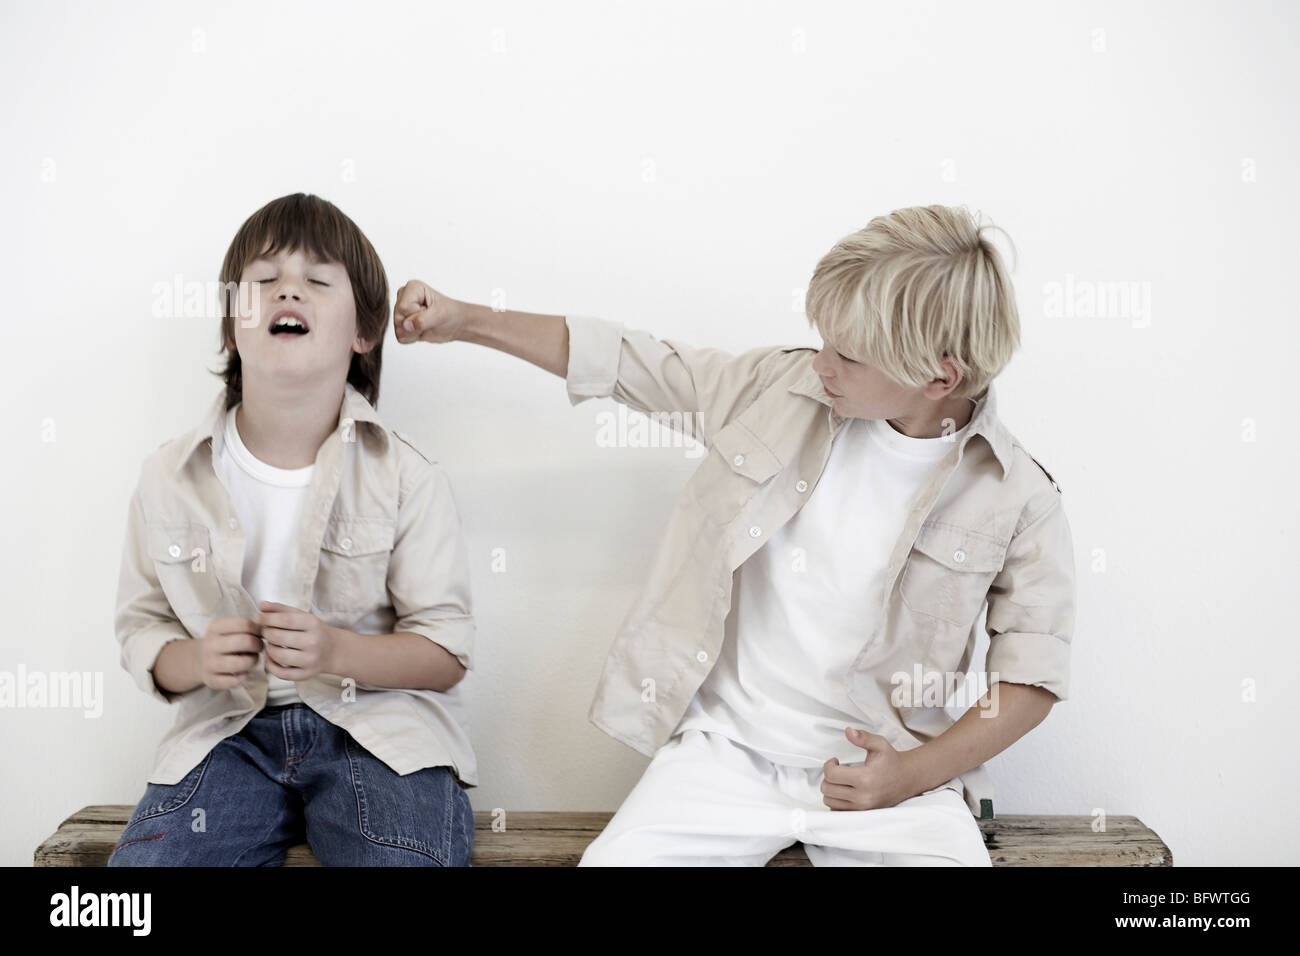 Young boys pretend fighting - Stock Image